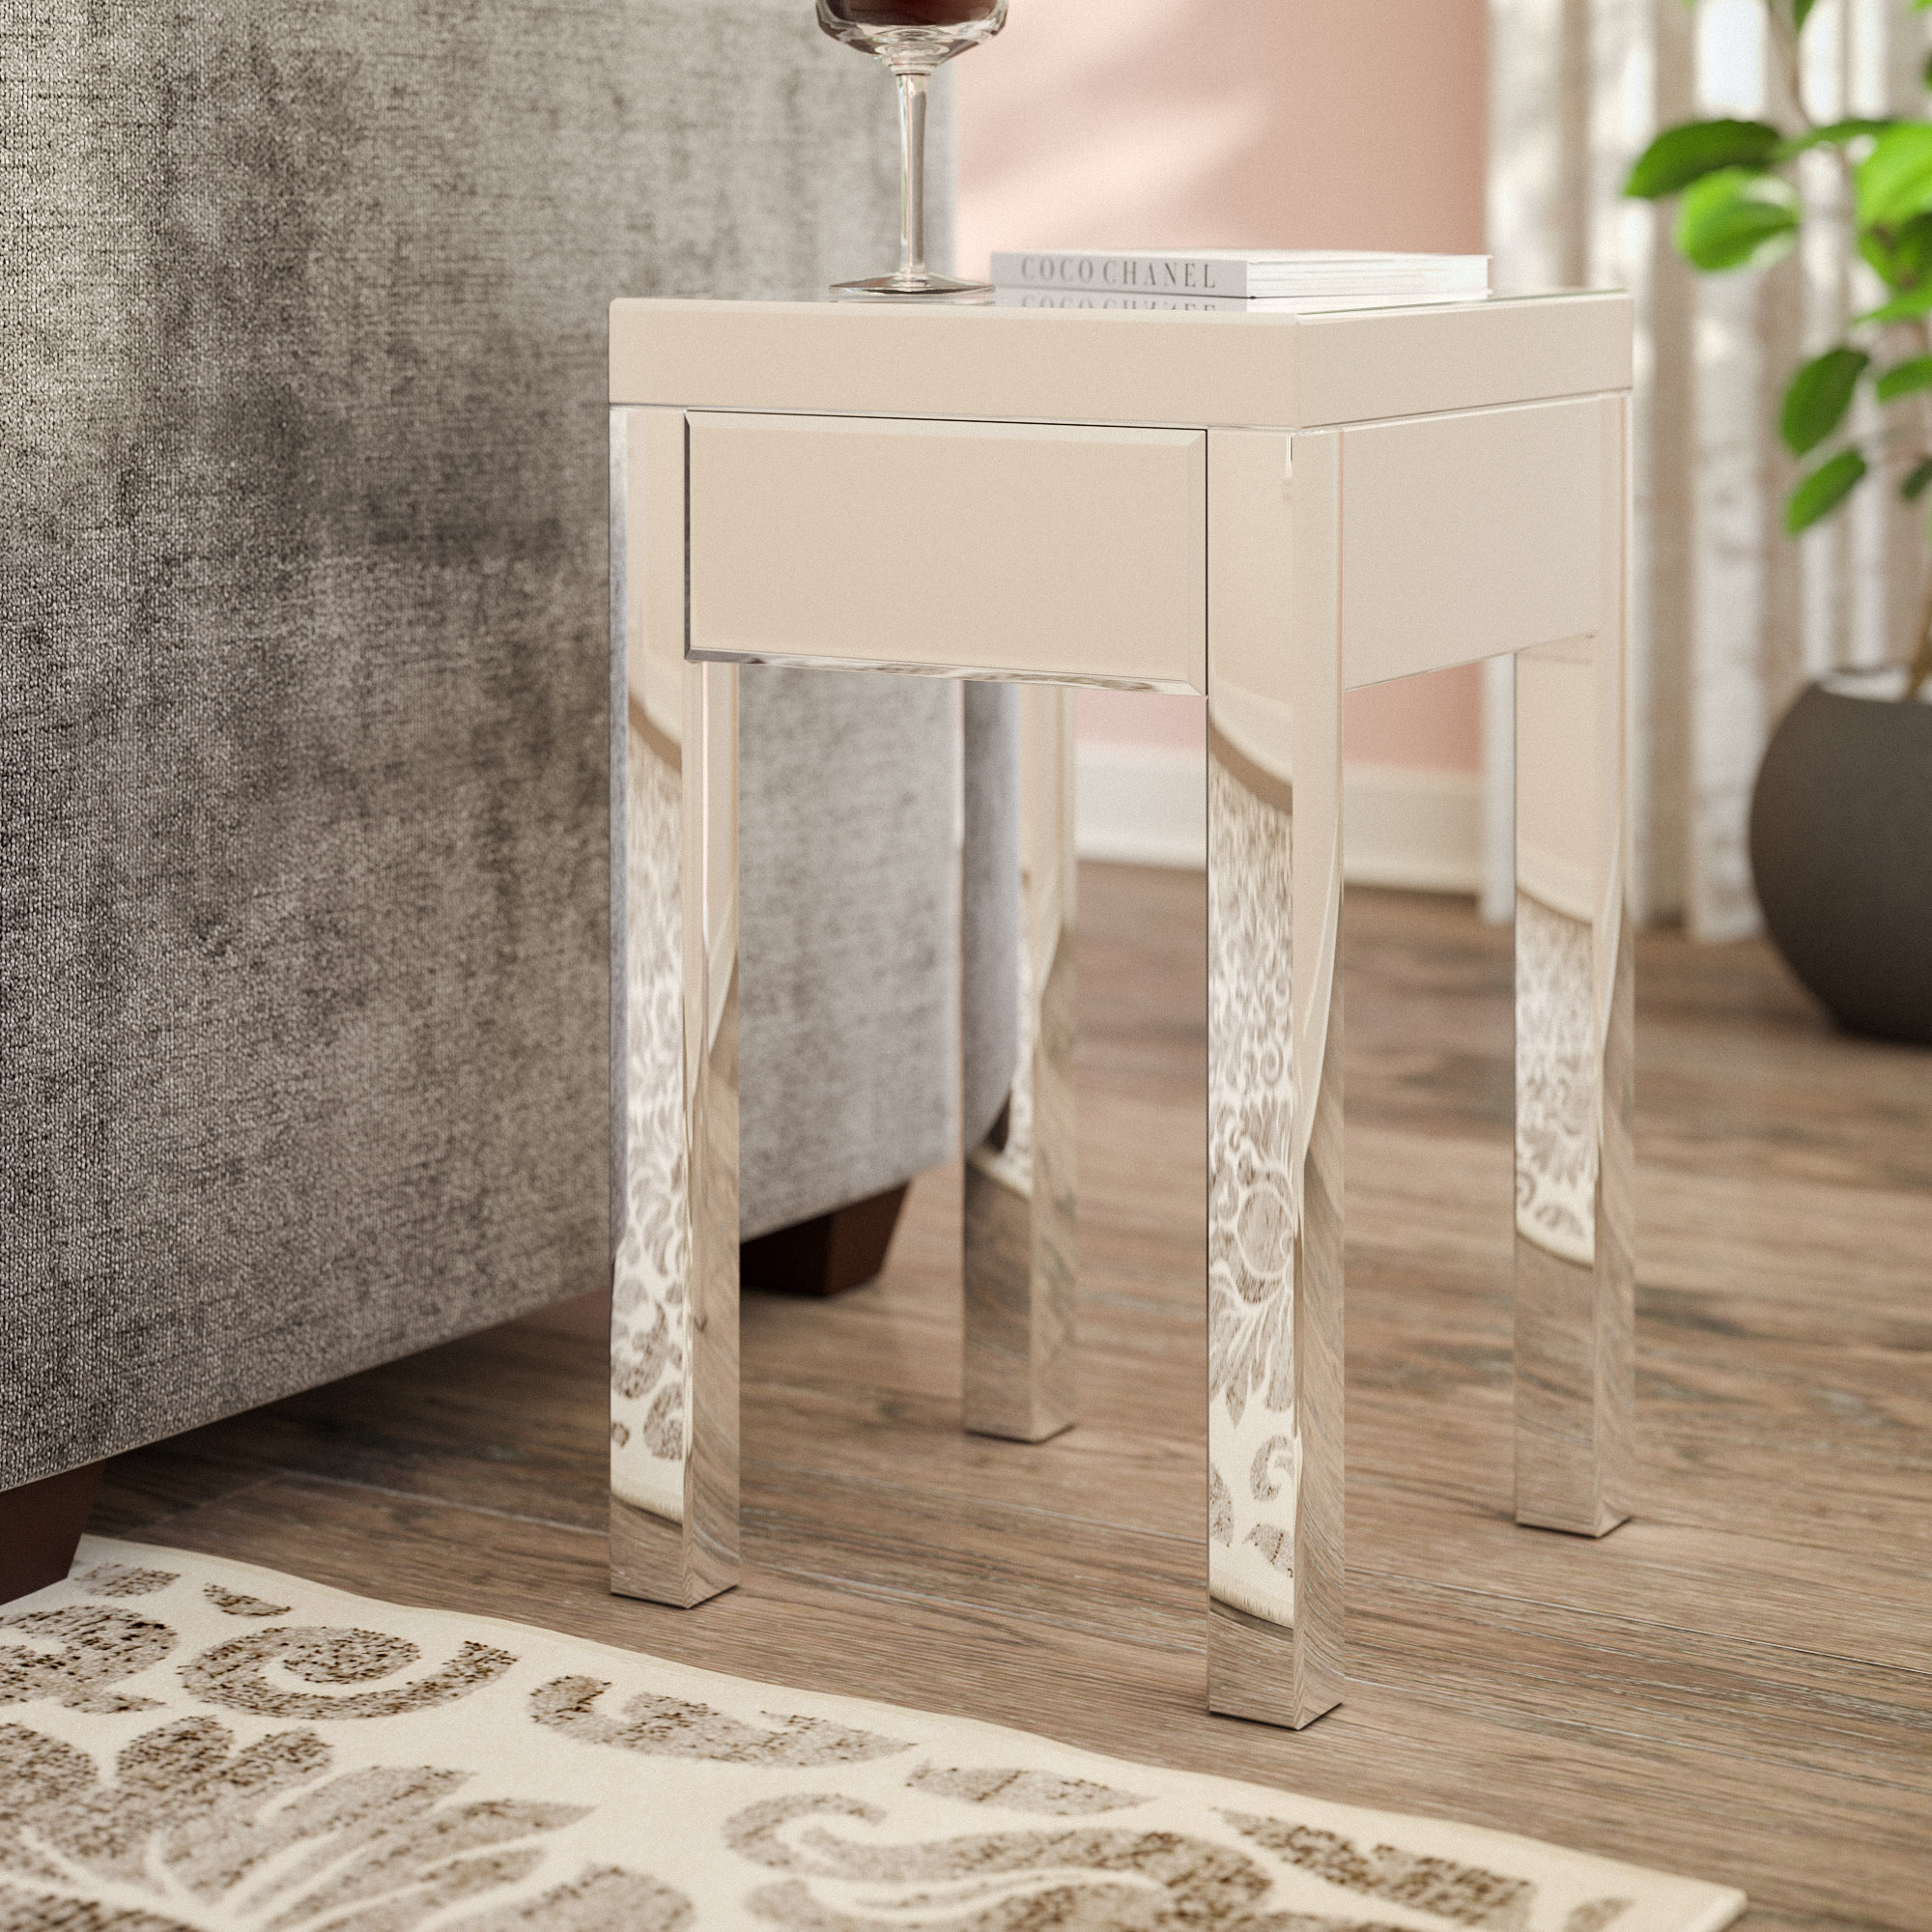 small mirrored accent table keels end with storage ikea garden chairs wall black cherry coffee powell espresso round wood and metal kitchen drawer pulls dark sofa console silver